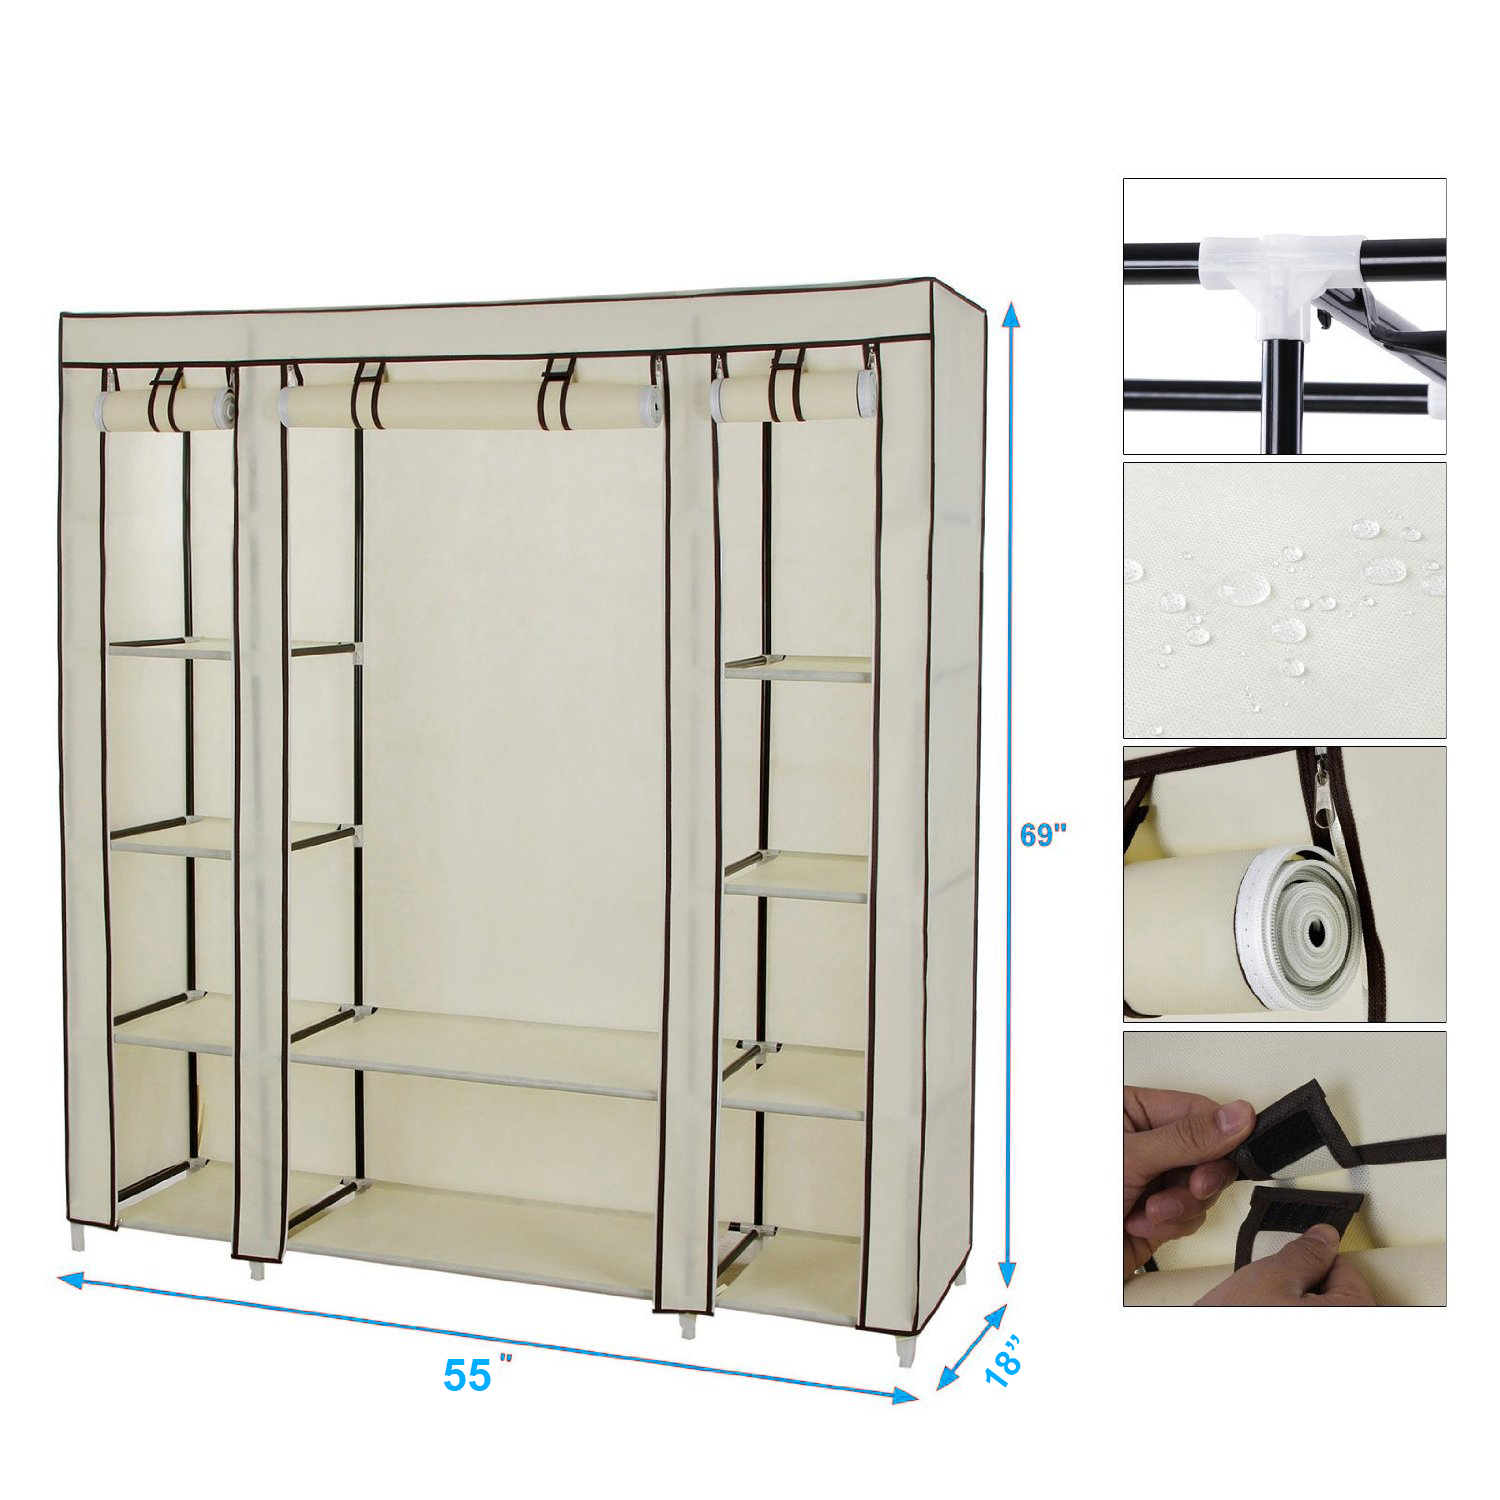 54 X 69 Portable Closet Storage Organizer Wardrobe Clothes Rack